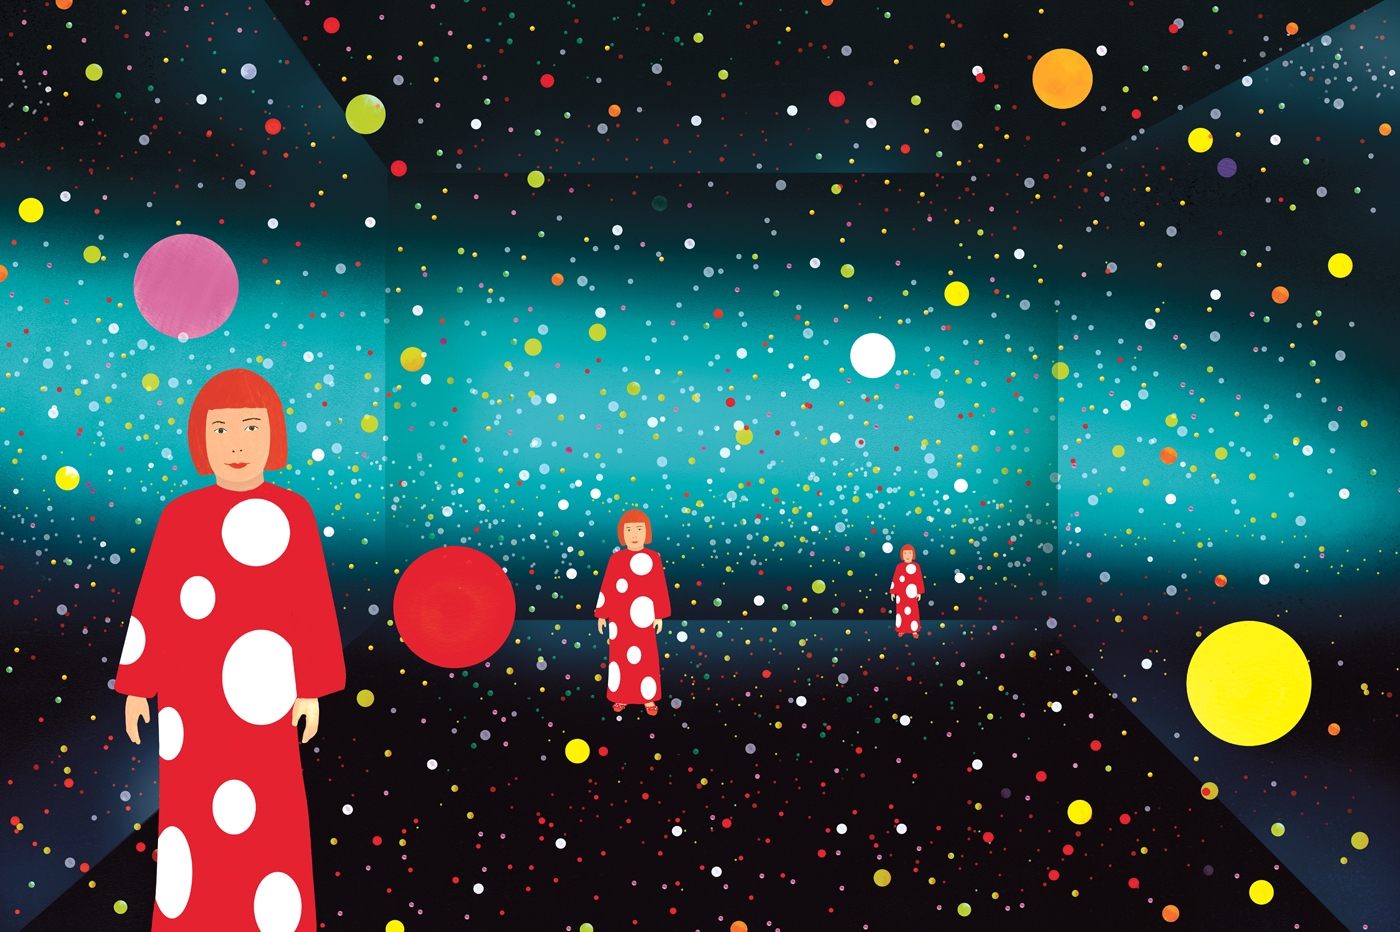 Yayoi Kusama: From Here to Infinity published by the Museum of Modern Art